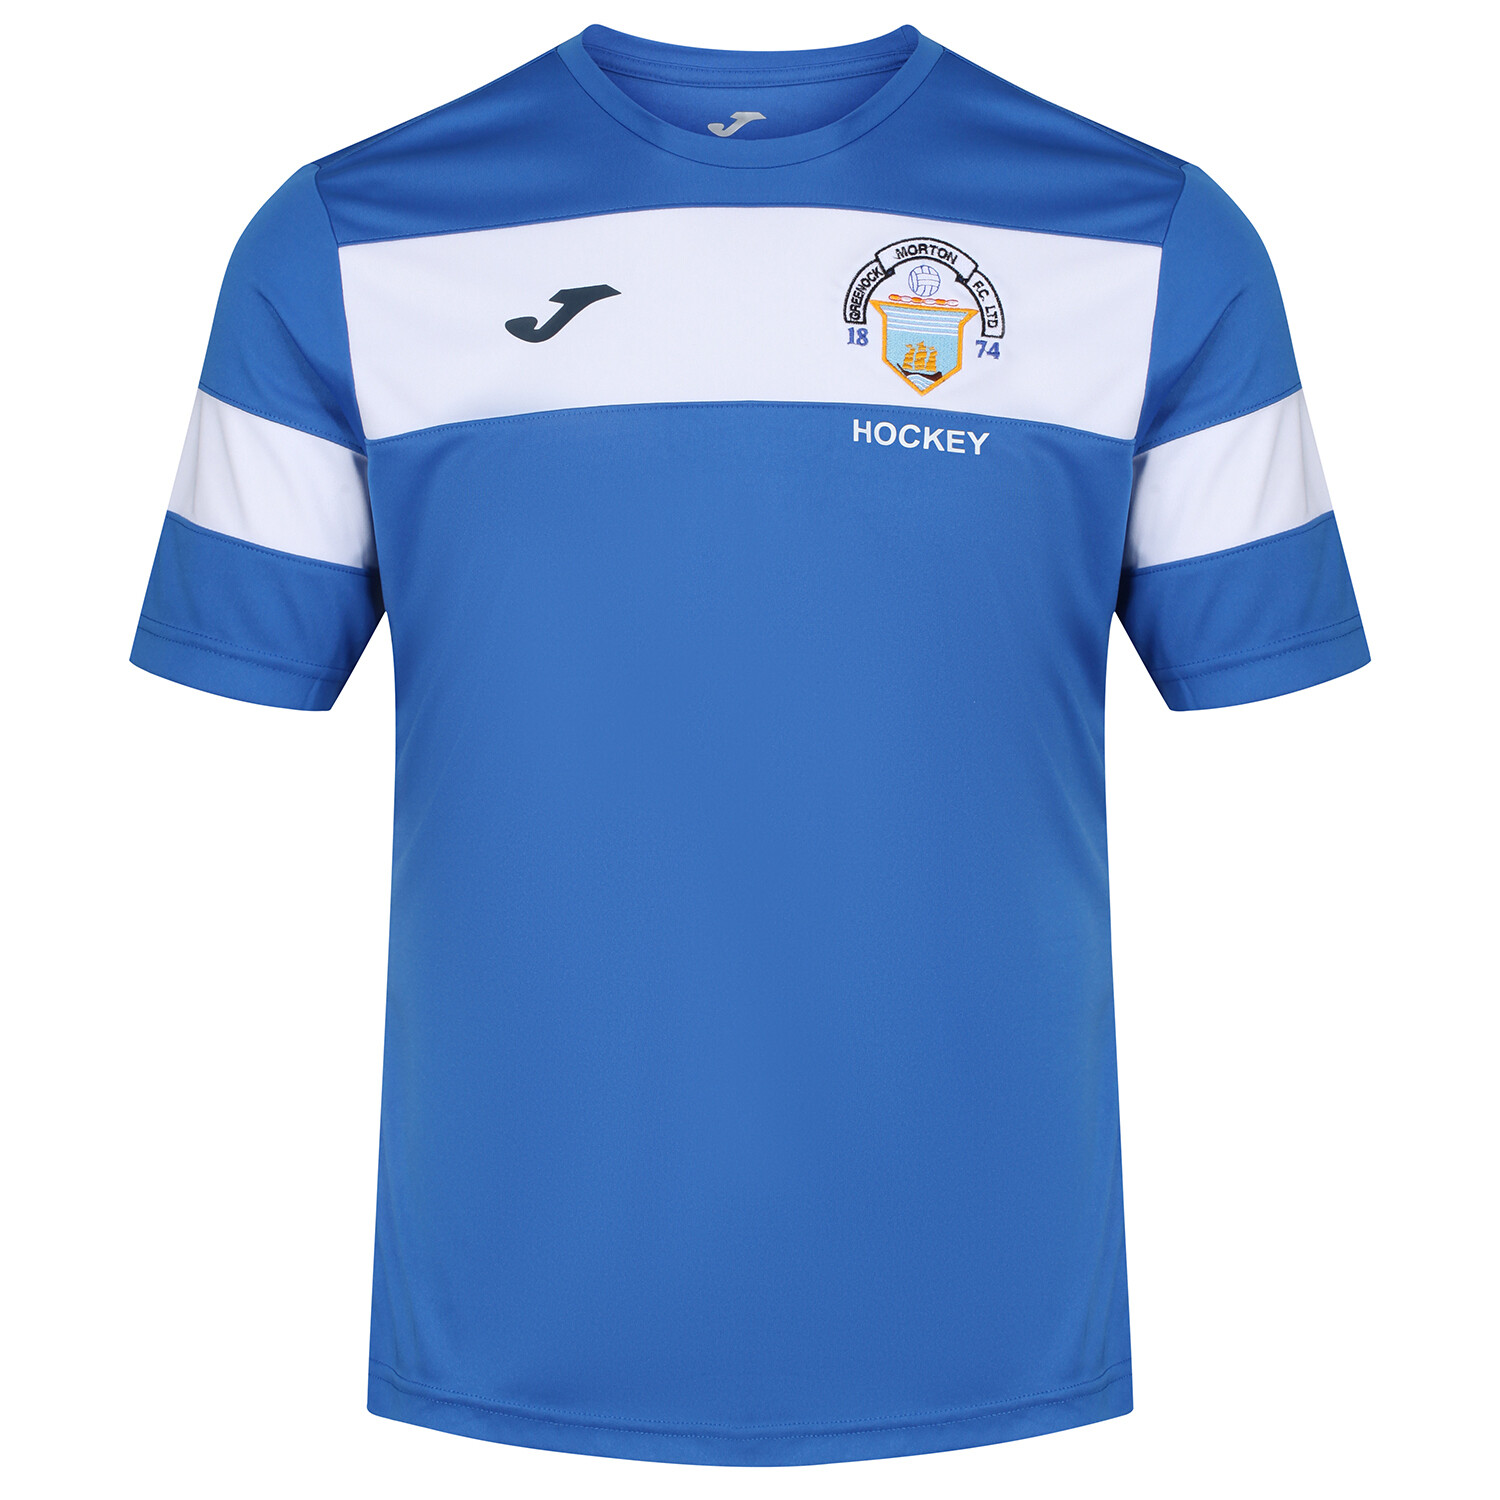 Greenock Morton HOCKEY T-Shirt & Short Set 'BEST SELLER'